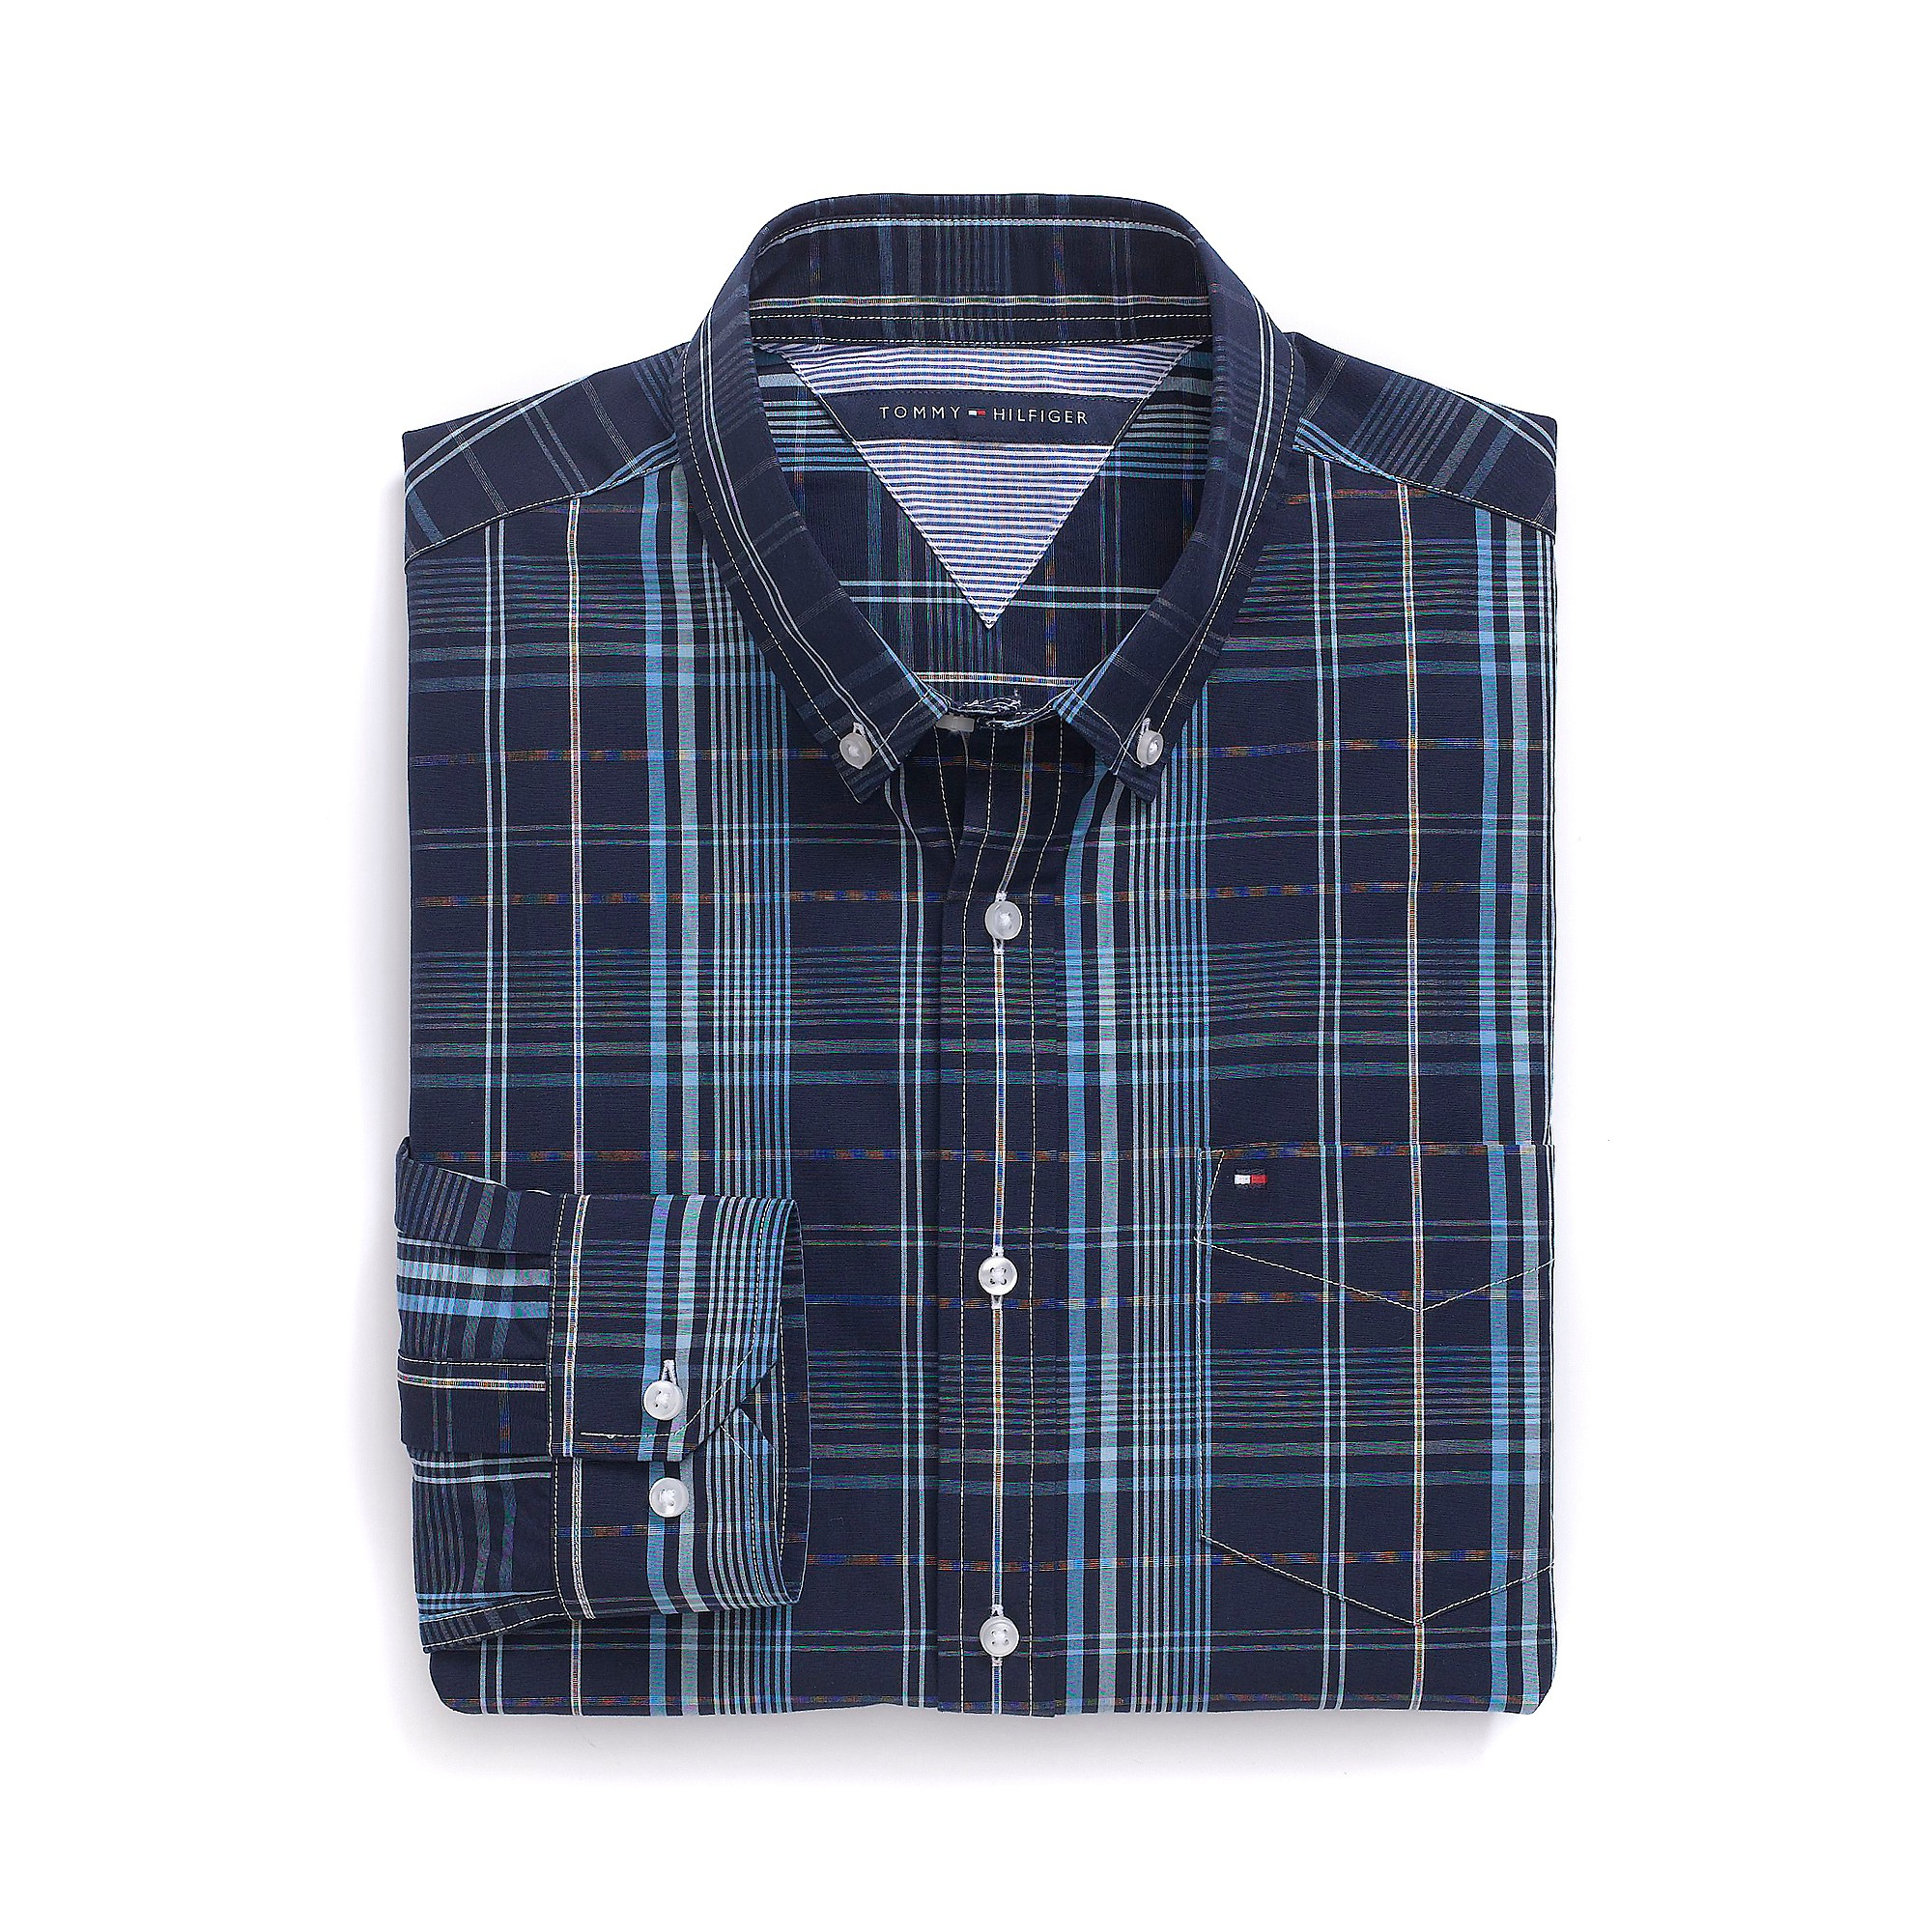 Tommy hilfiger custom fit plaid shirt in blue for men for Navy blue plaid shirt